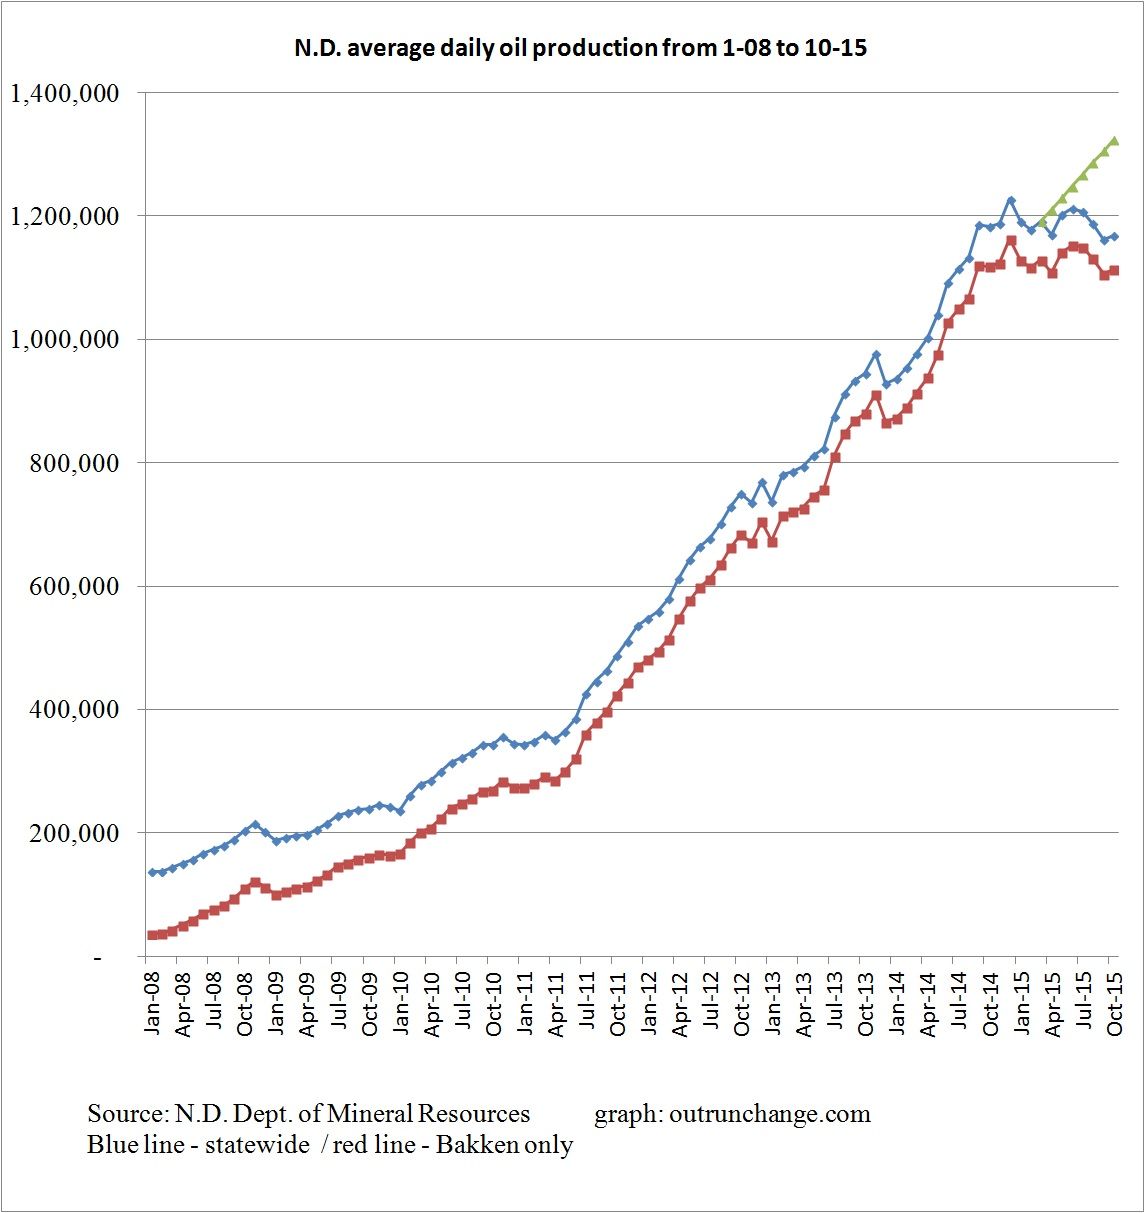 production to 10-15 with guess